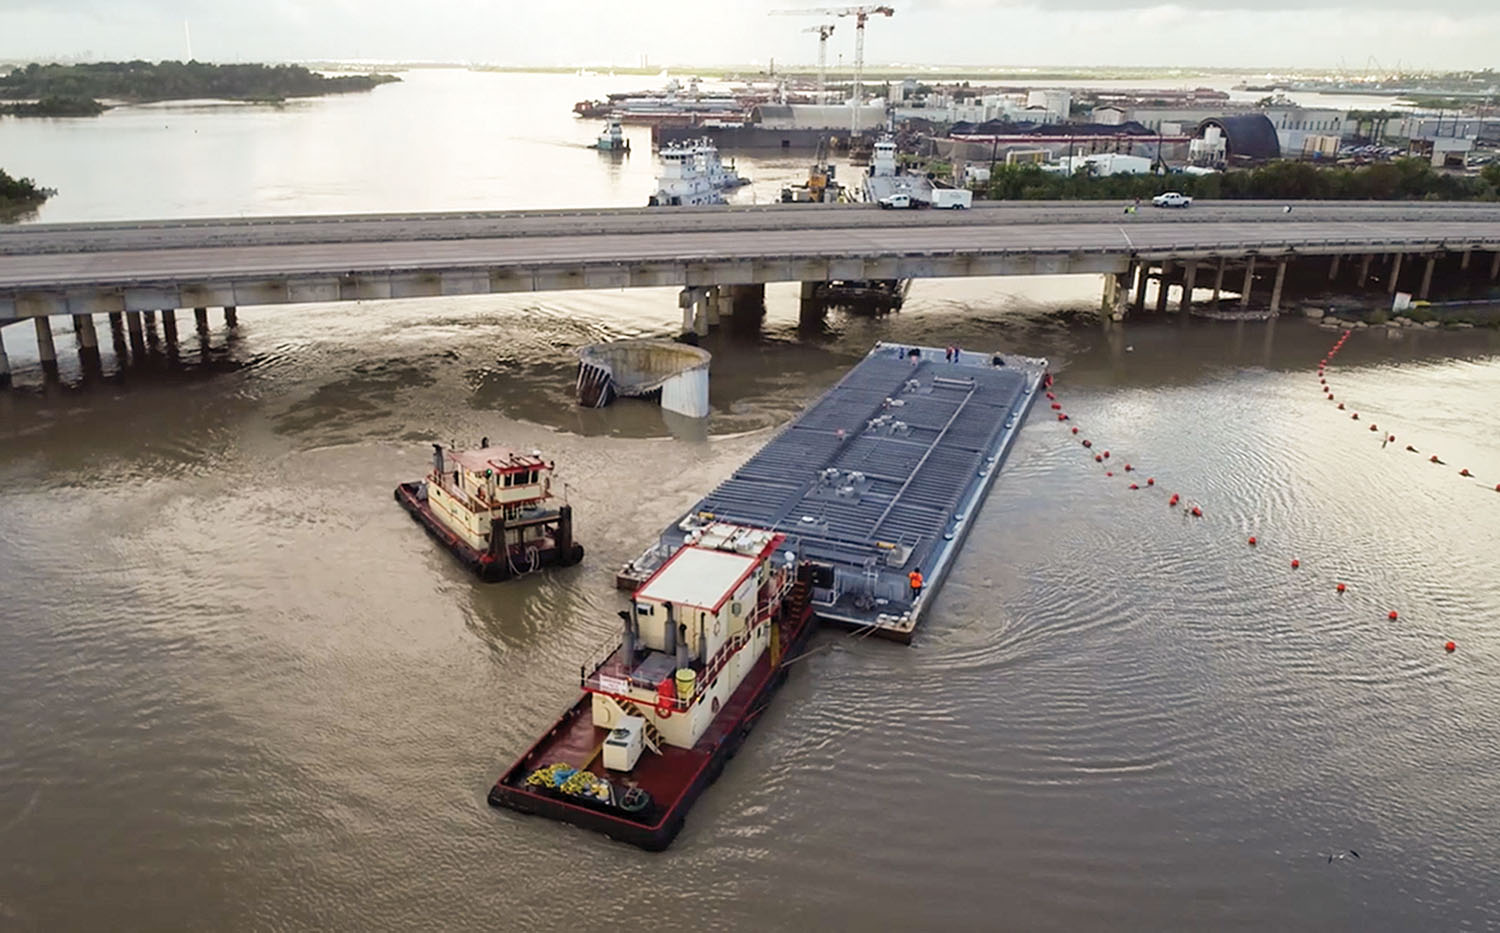 Screen capture from Coast Guard drone video of the removal of the second barge from the I-10 bridge.